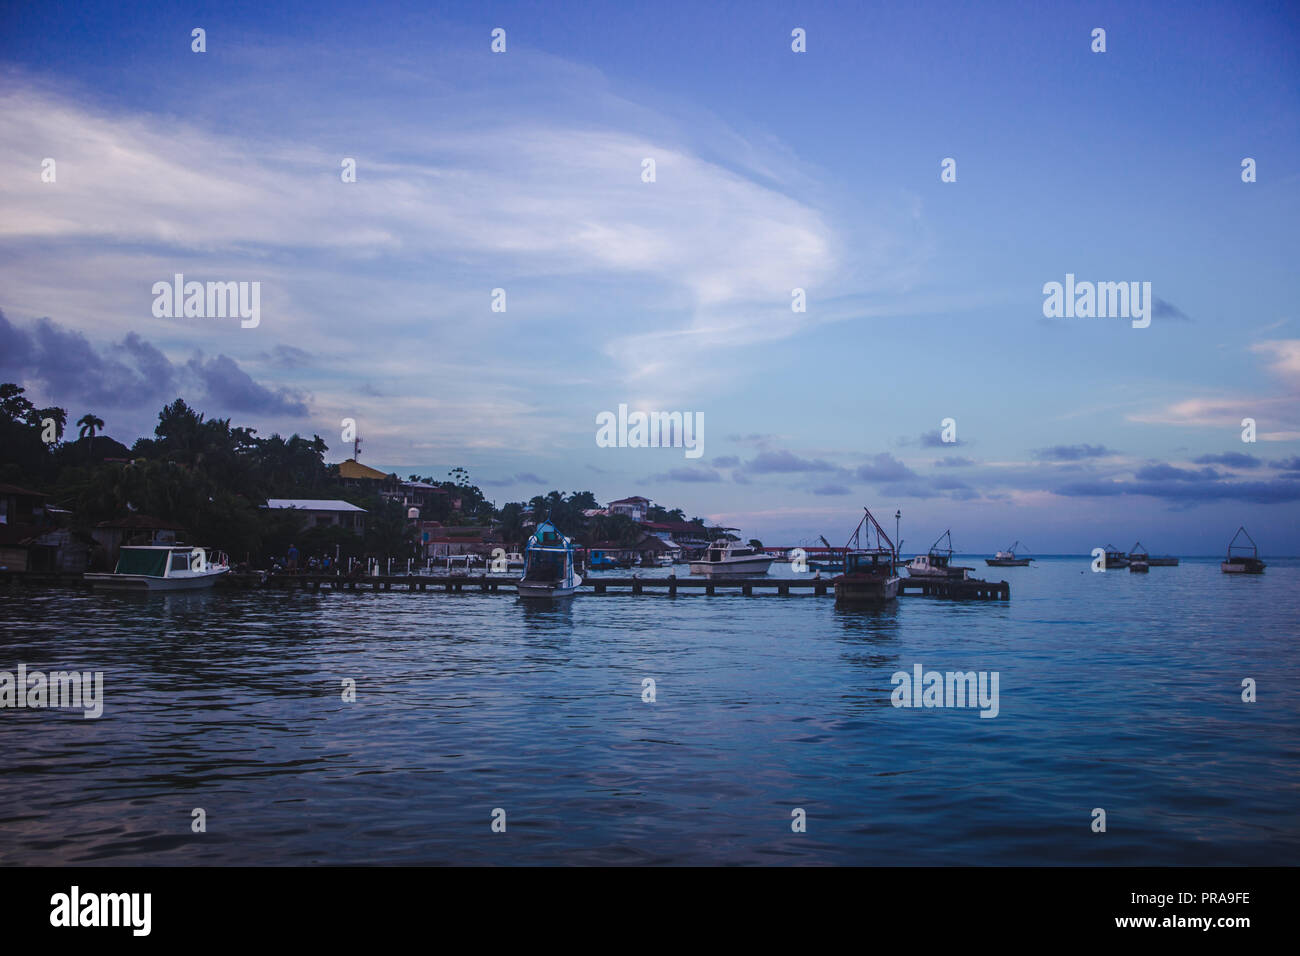 Sunset over boats lined up at the docks of Lívingston, a Garifuna Caribbean town in east Guatemala - Stock Image